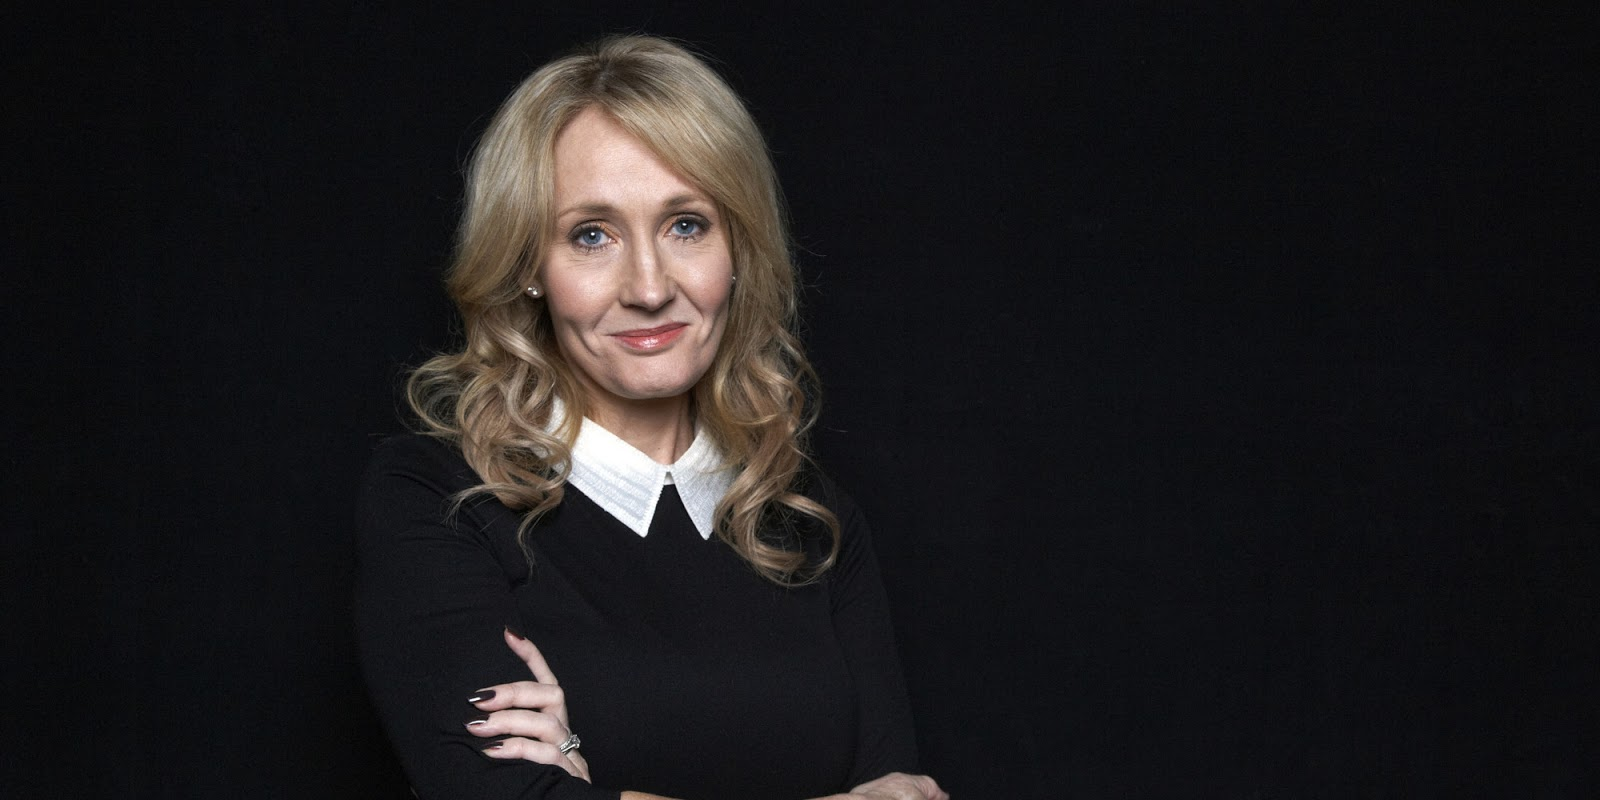 How much money are you willing to give J.K. Rowling, right at this moment?